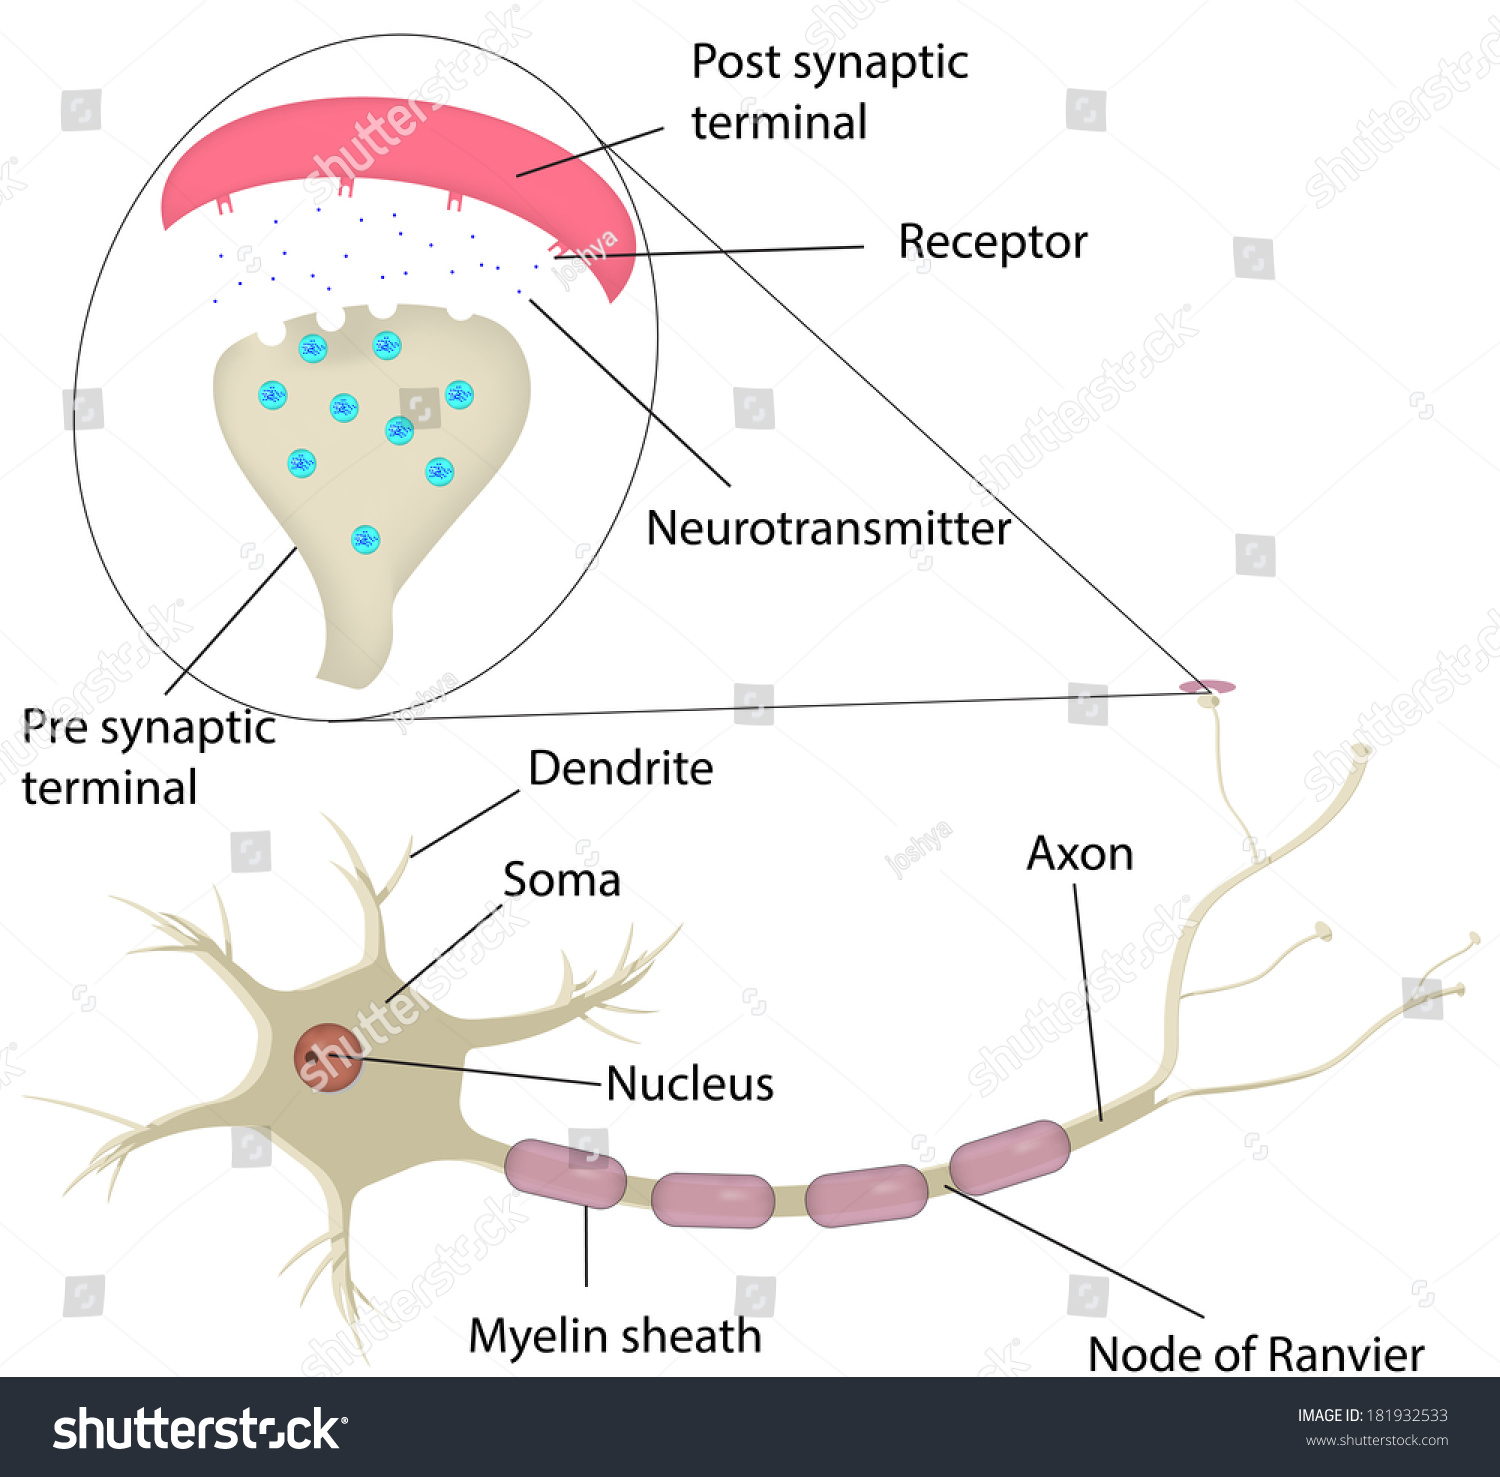 synapse diagram label lawn mower starter wiring neuron labeled stock illustration